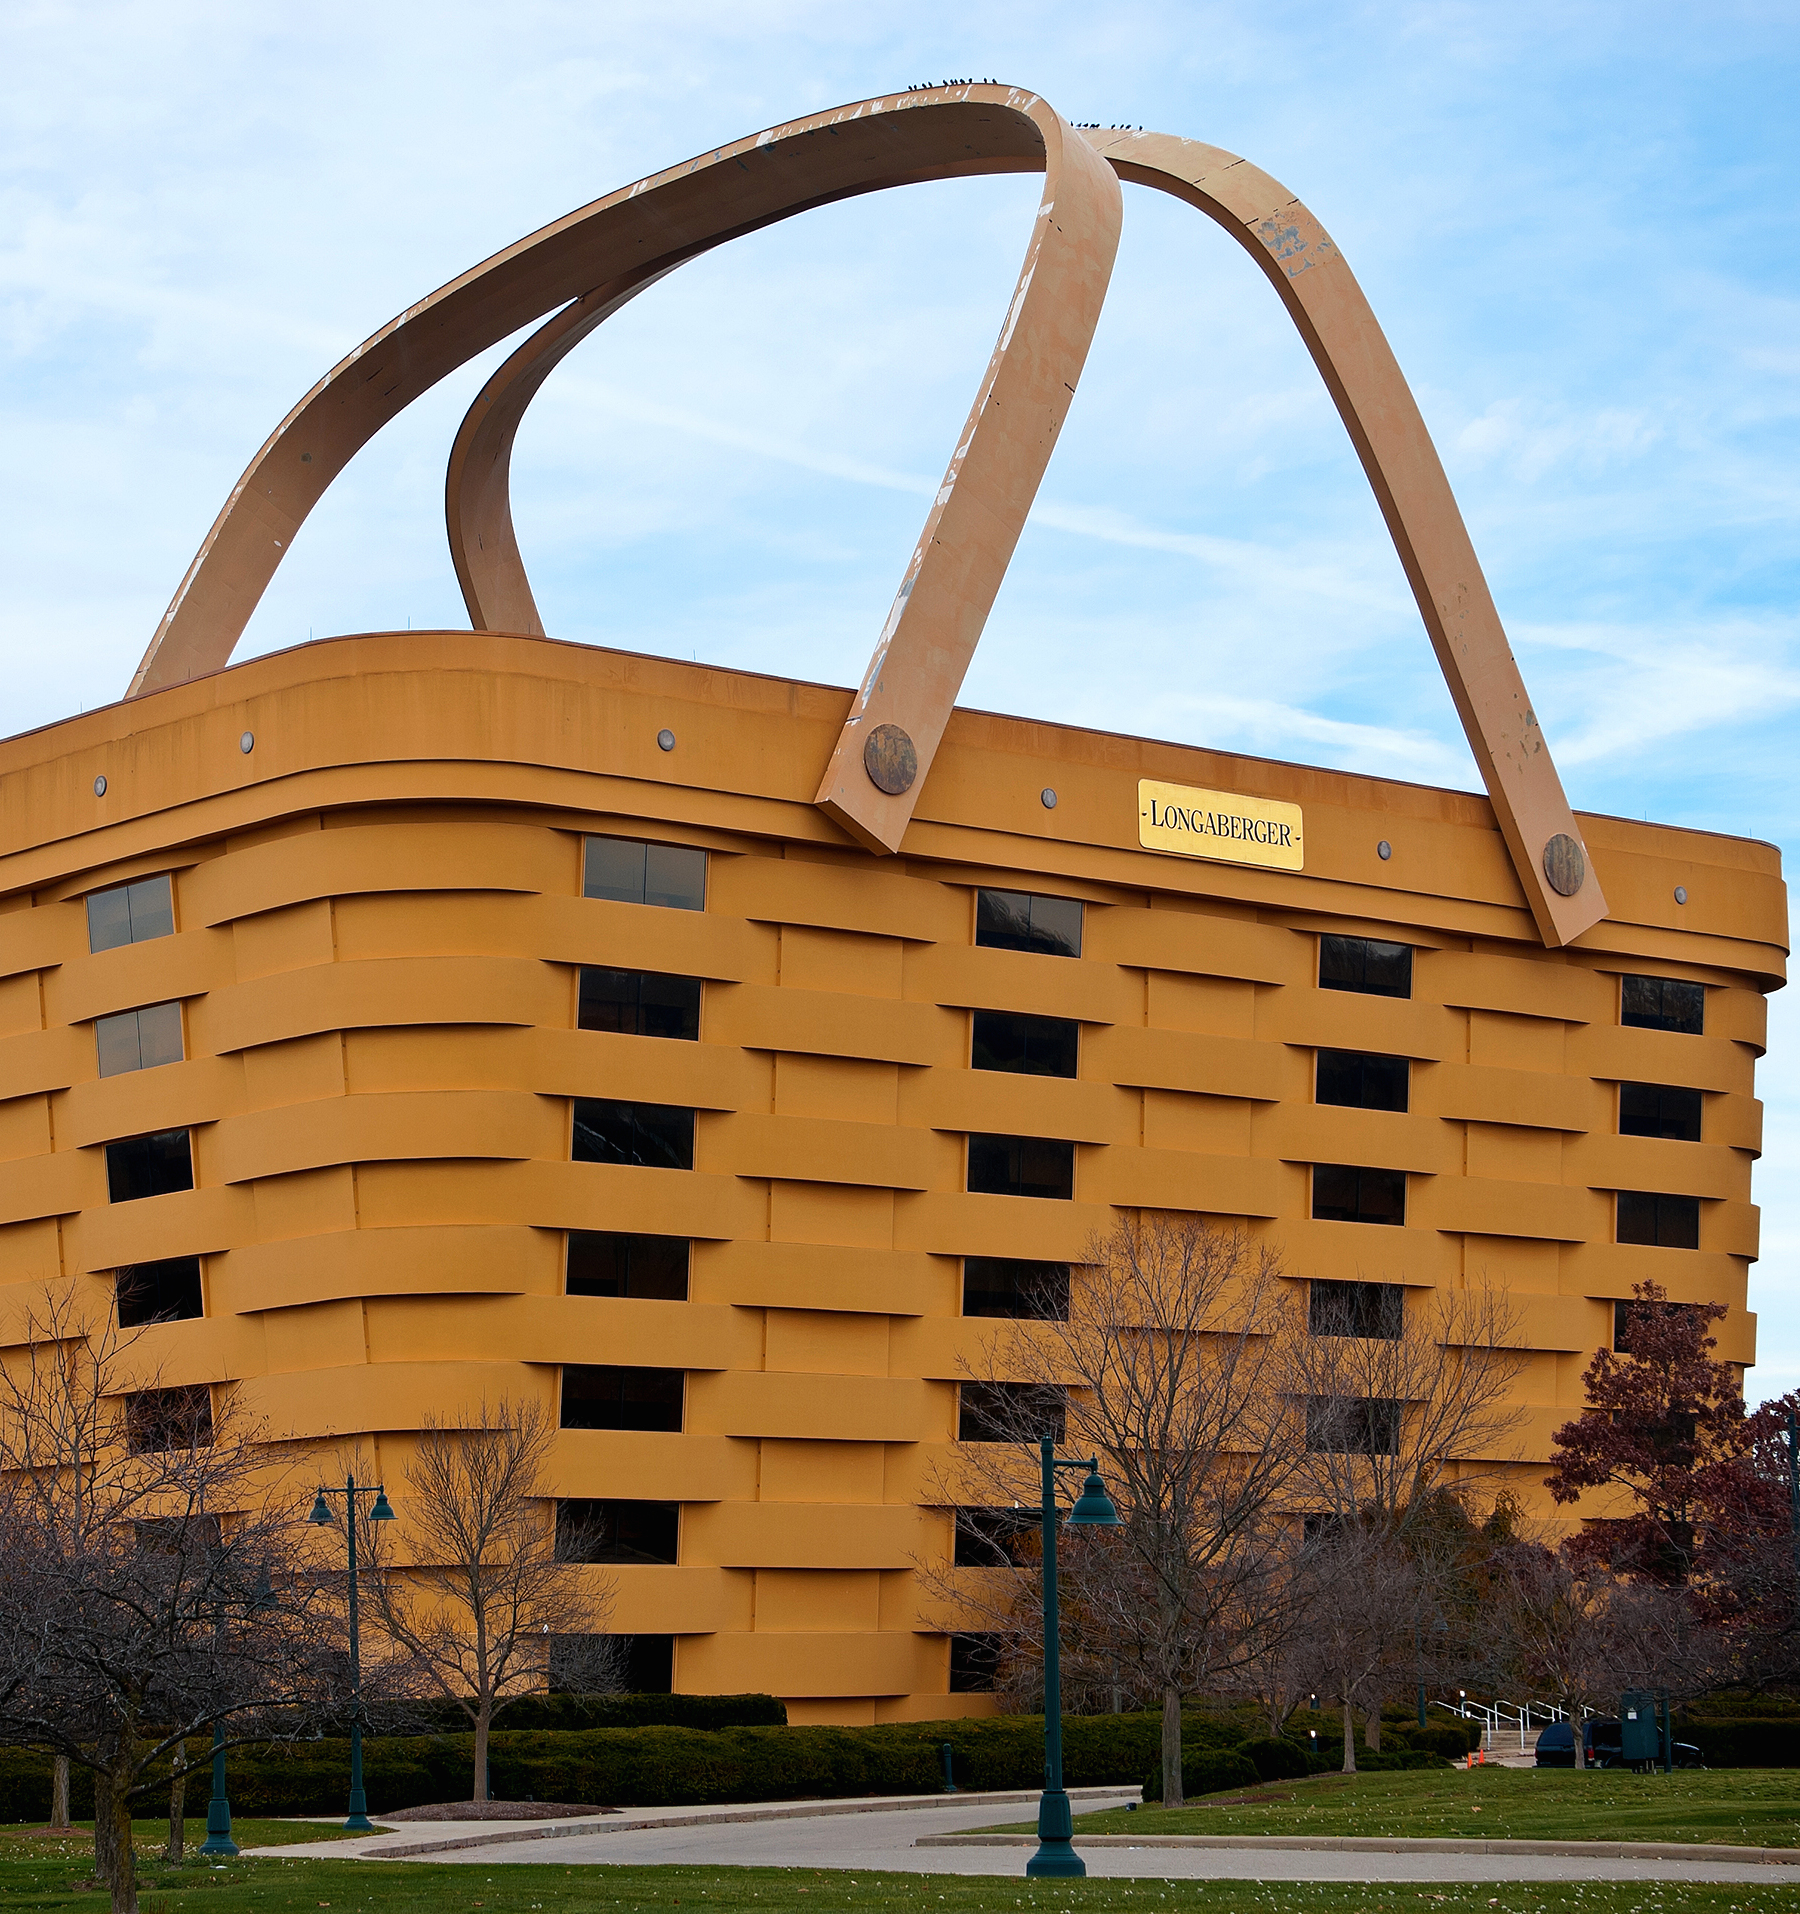 Longaberger Basket Building 32 Surreal Travel Spots You